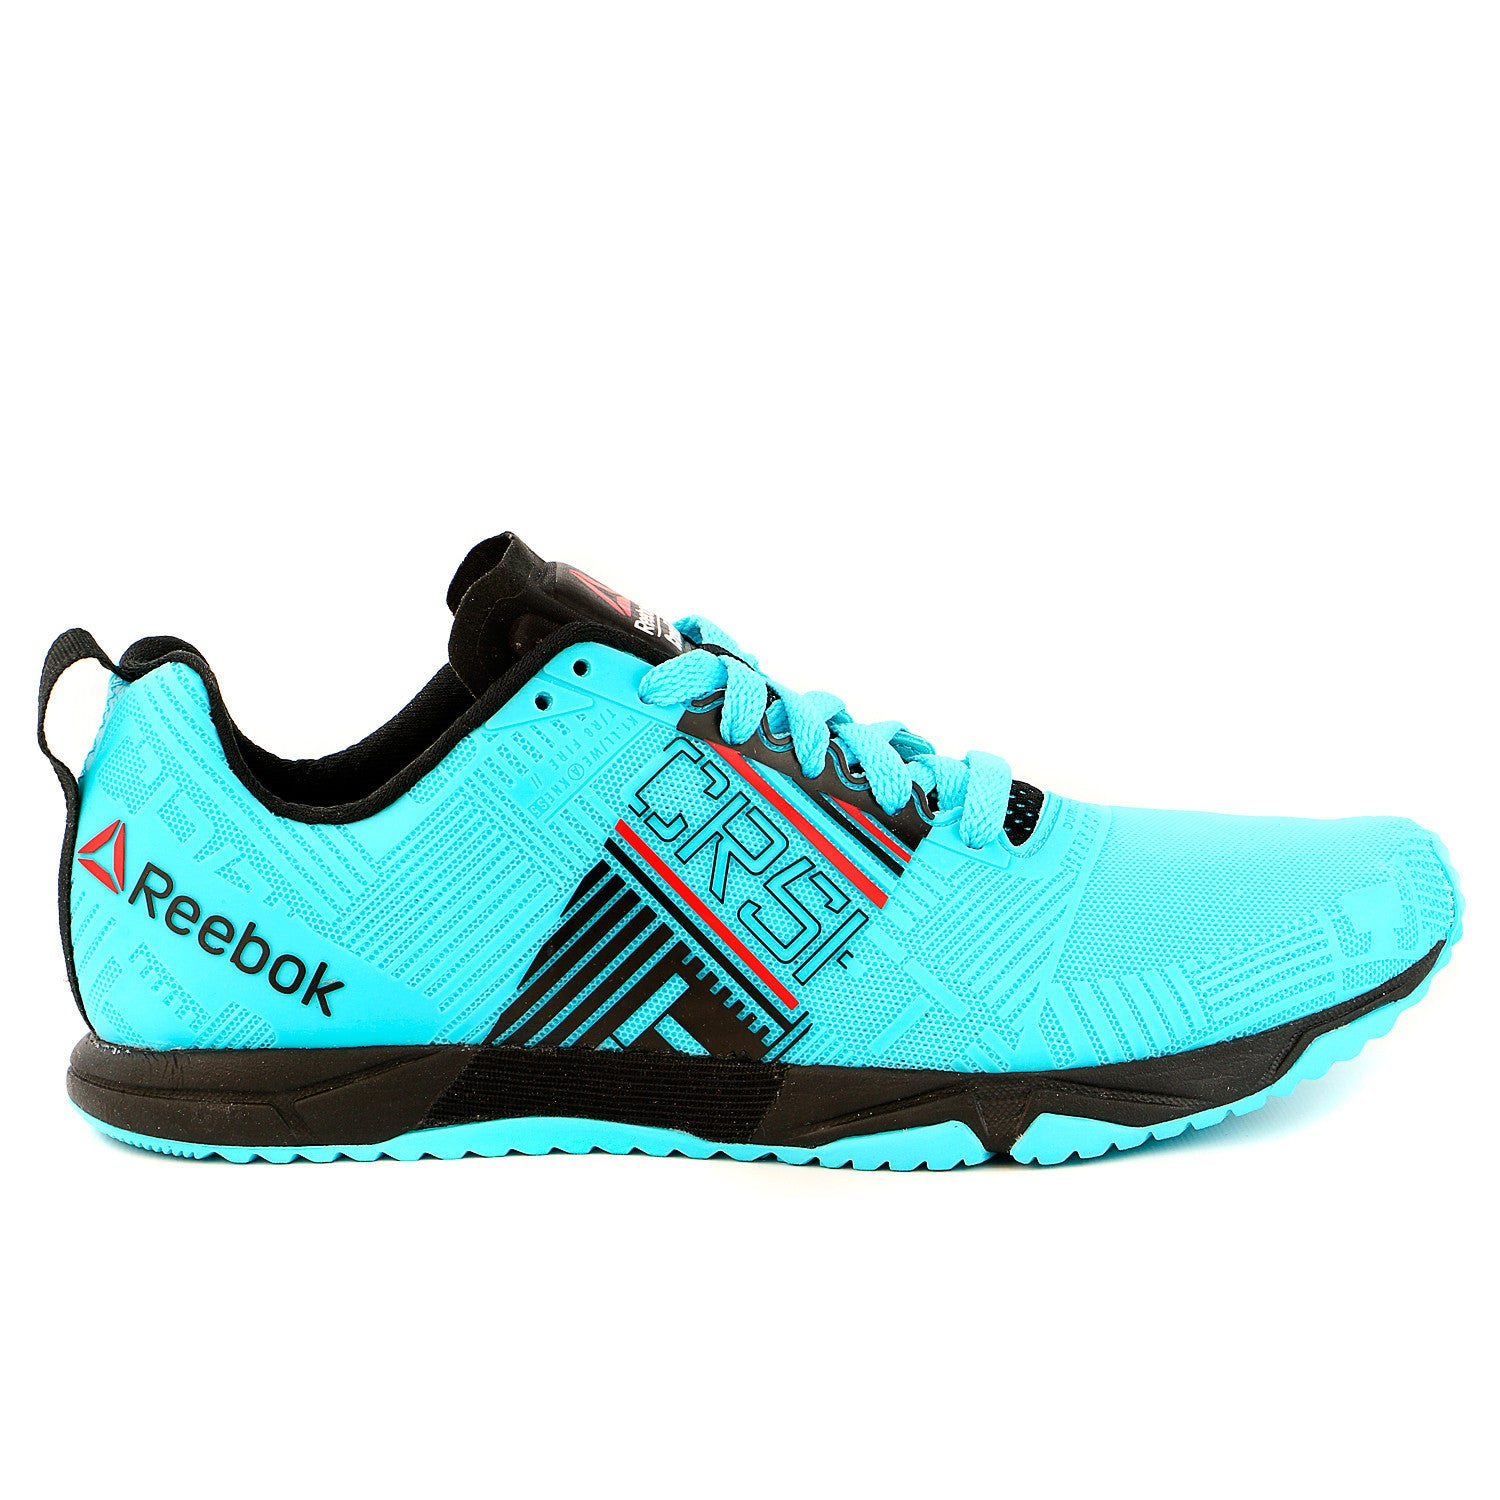 Reebok CrossFit Sprint 2.0 Training Sneaker Shoe - Mens - Shoplifestyle f0be4062b